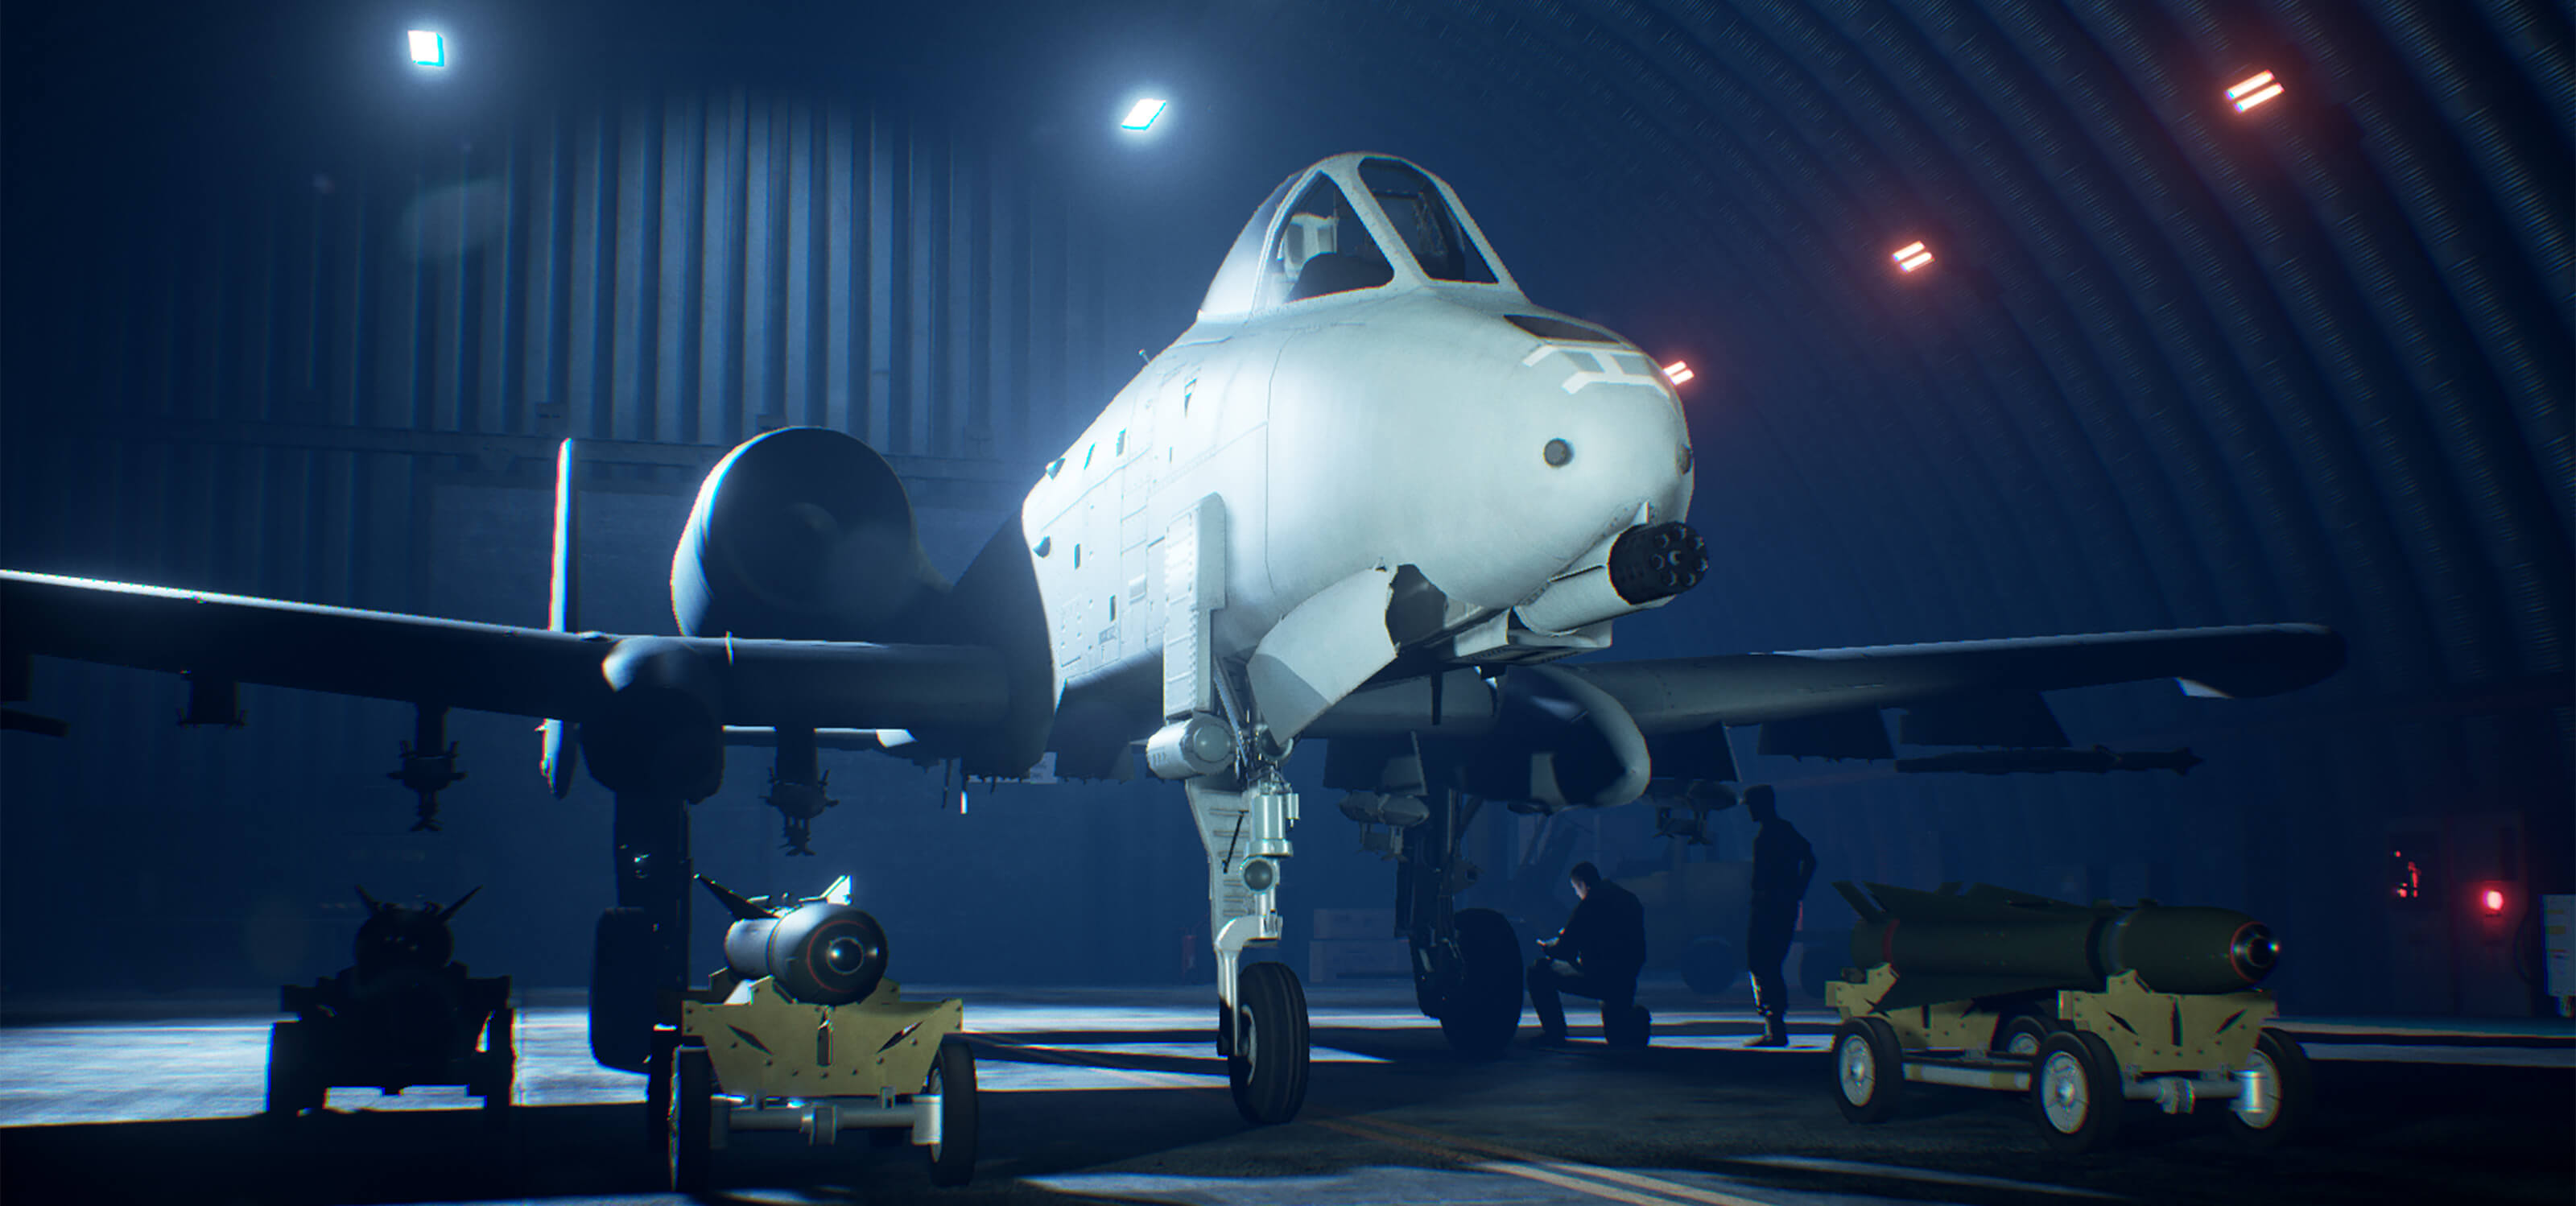 Screenshot from Ace Combat 7 of a fighter jet in a hangar with two men working near the landing gear.